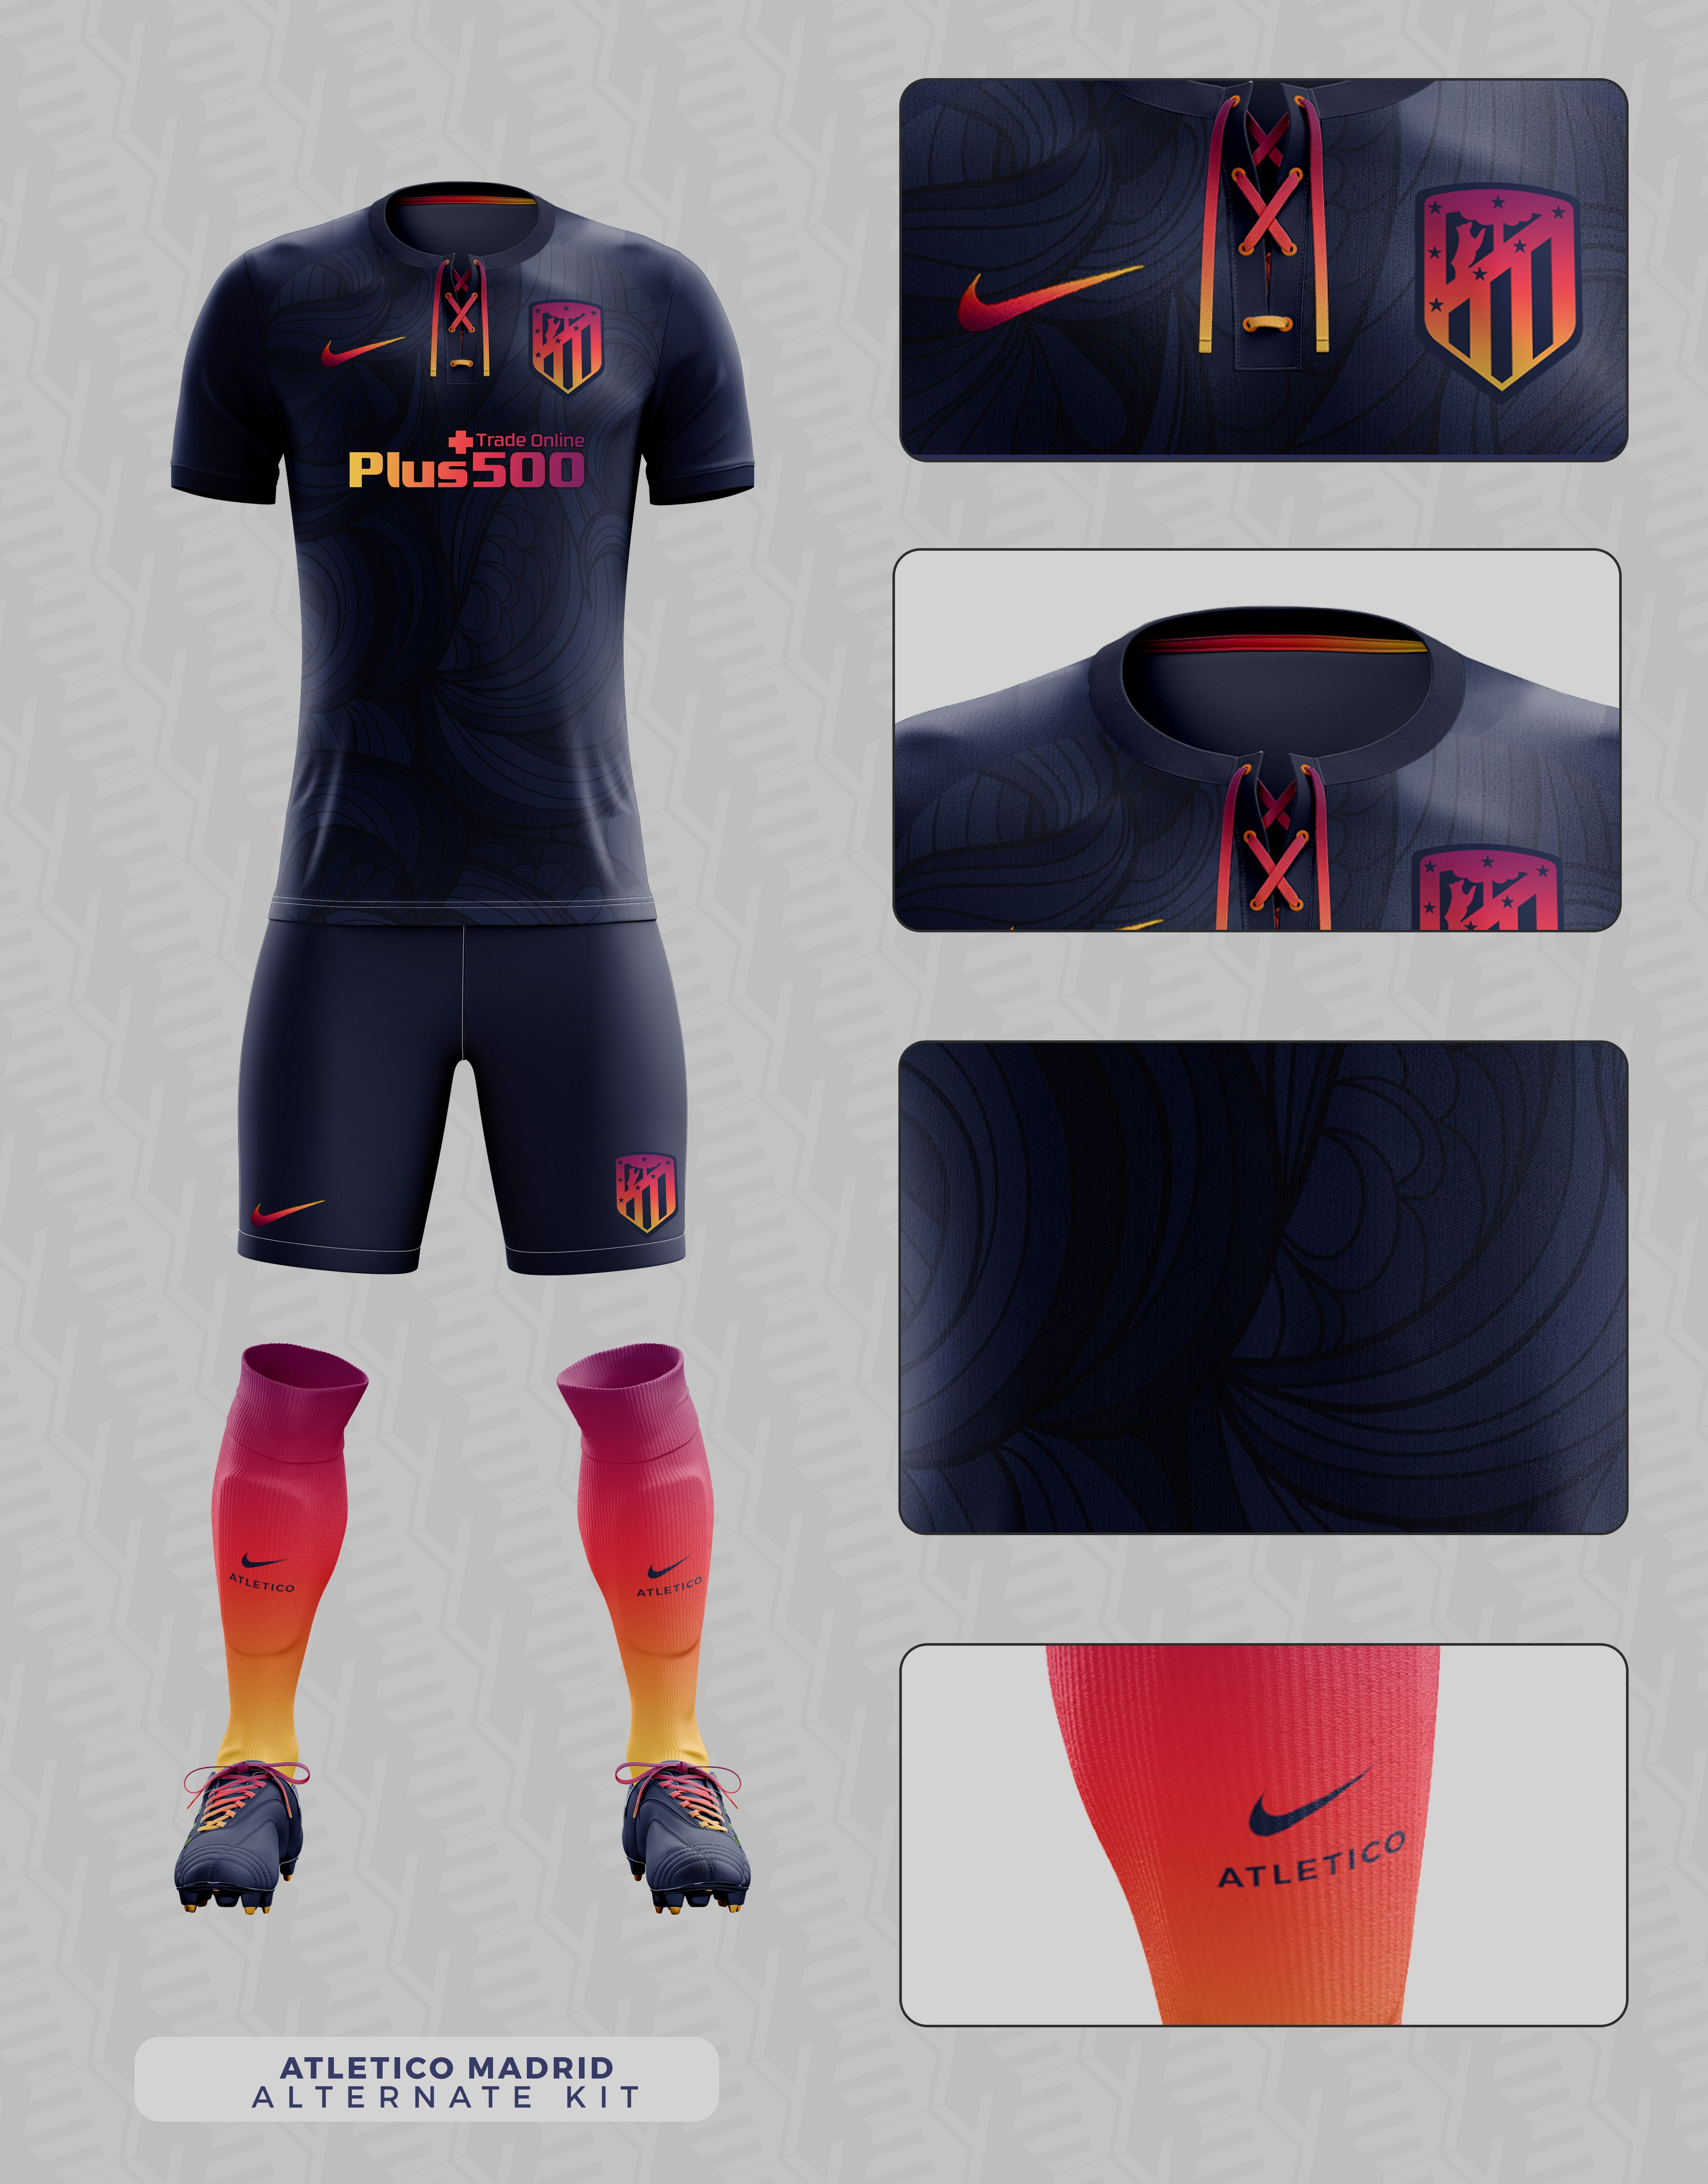 Pin By Devin Romeo On Rugby Jersey Pinterest Rugby Jersey Design